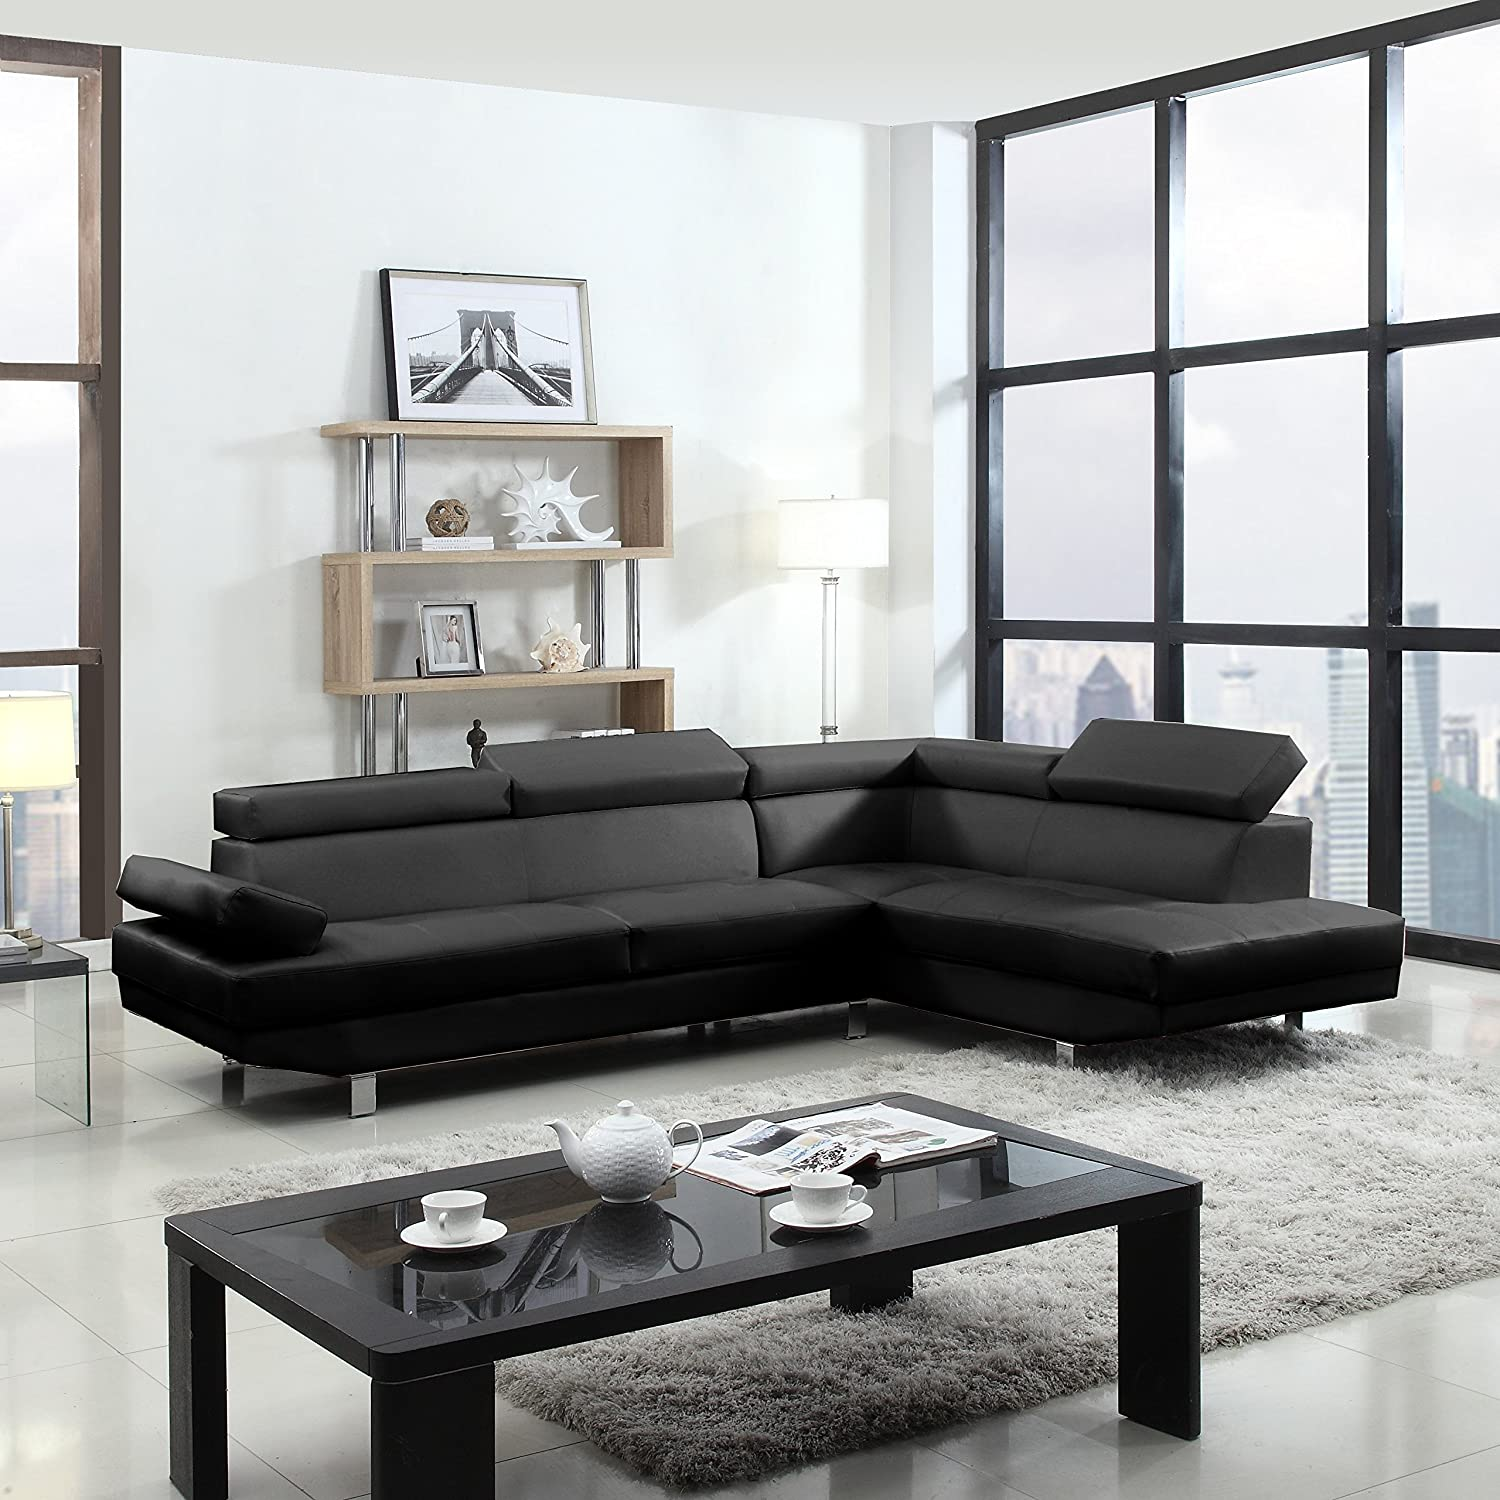 Amazon.com 2 Piece Modern Contemporary Faux Leather Sectional Sofa Kitchen u0026 Dining : leather sectional sofa bed - Sectionals, Sofas & Couches